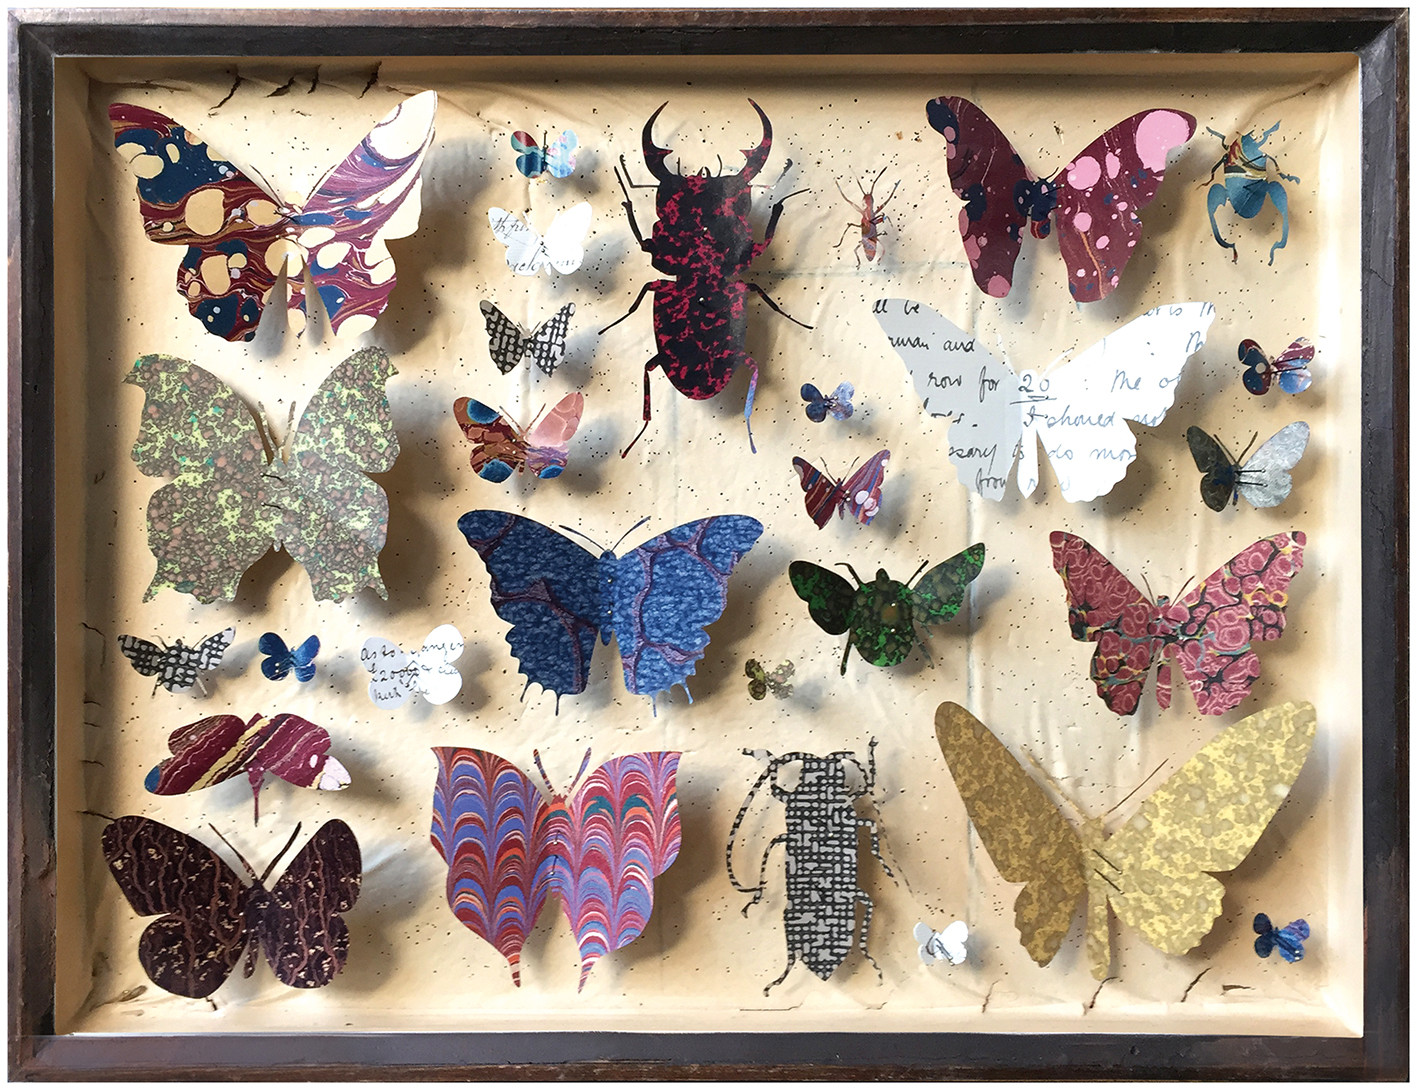 "<span class=""link fancybox-details-link""><a href=""/artists/142-helen-ward/works/6236-helen-ward-entomology-case-10-2019/"">View Detail Page</a></span><div class=""artist""><strong>Helen Ward</strong></div> <div class=""title""><em>Entomology Case 10</em>, 2019</div> <div class=""medium"">Victorian entomology drawer, hand-marbled papers, Victorian hand written letter, enamel pins</div> <div class=""dimensions"">29 x 39 cm</div><div class=""copyright_line"">Own Art: £ 59.50x 10 Monthly 0% APR Representative Payments</div>"